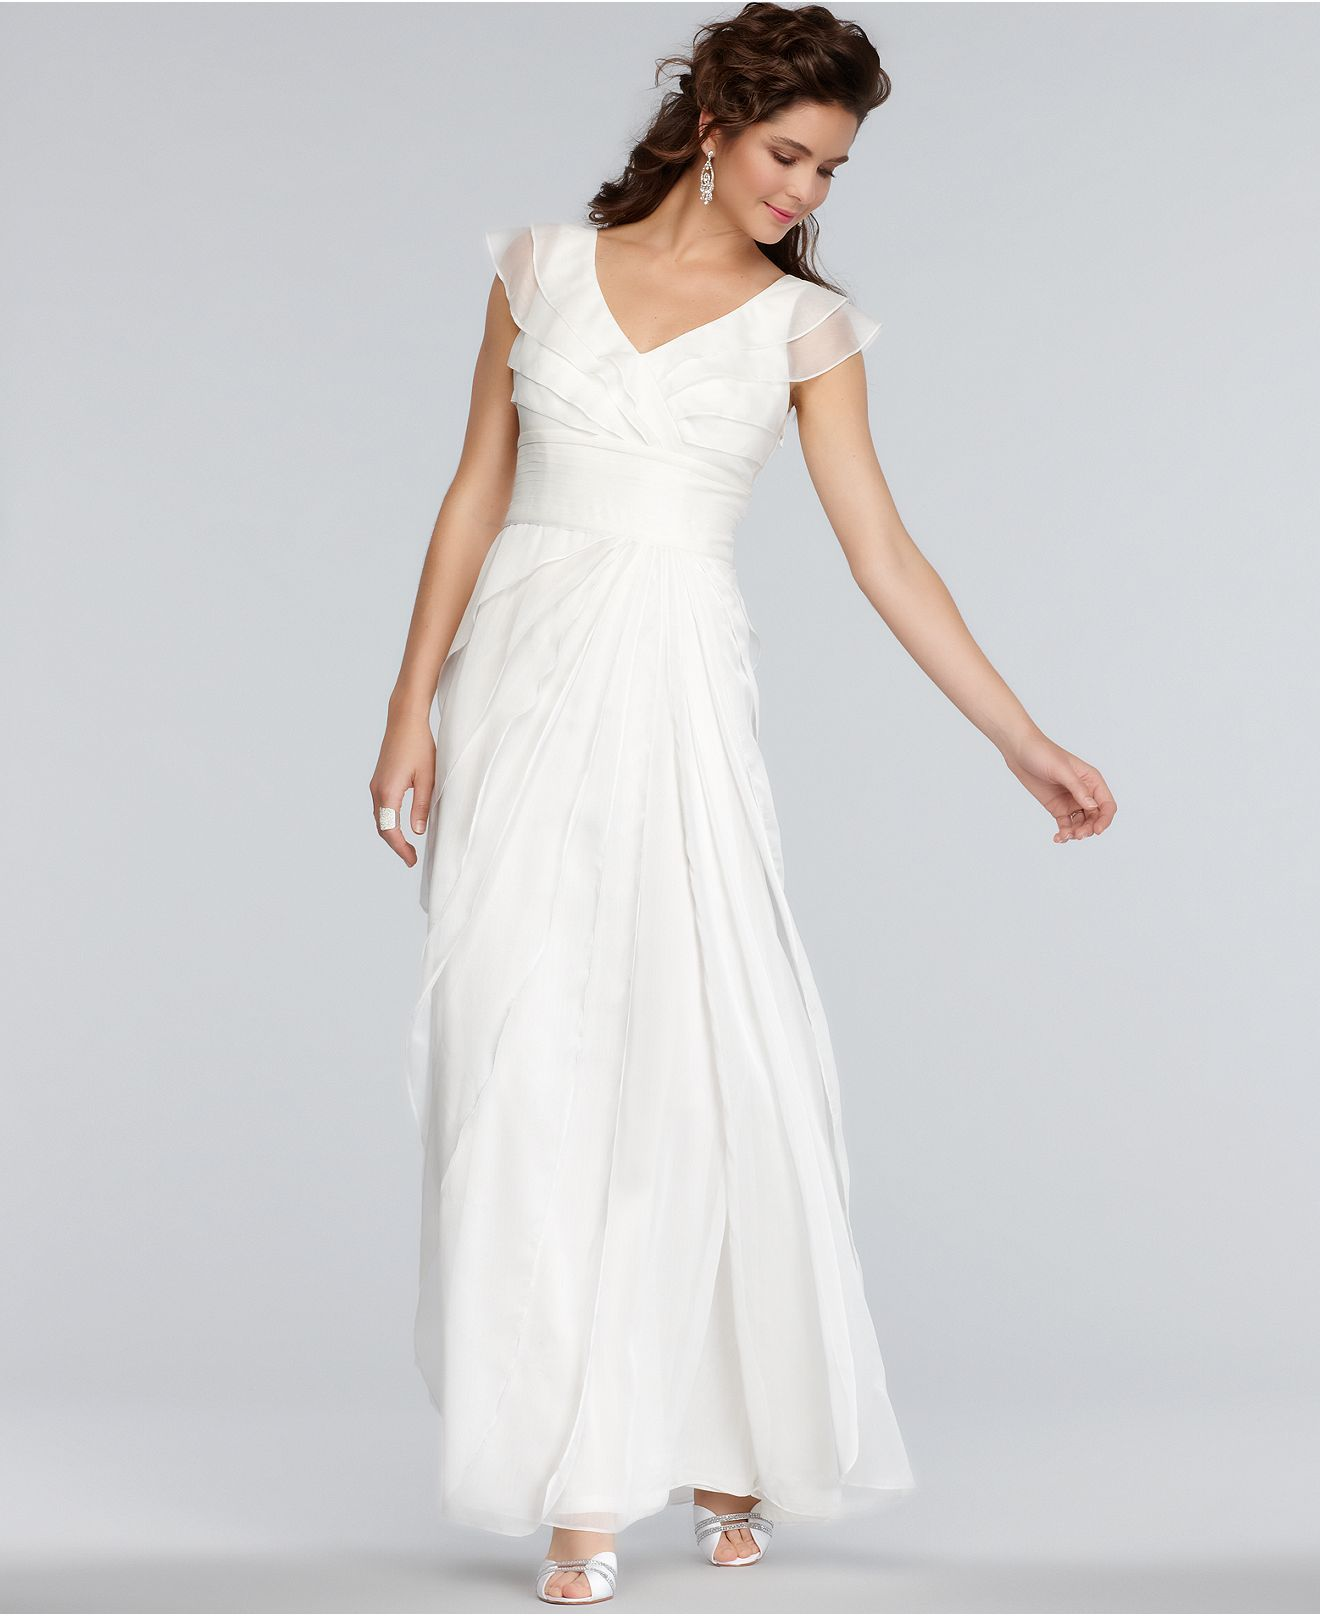 adrianna papell wedding dress papell dress cap sleeve pleated empire waist 1210